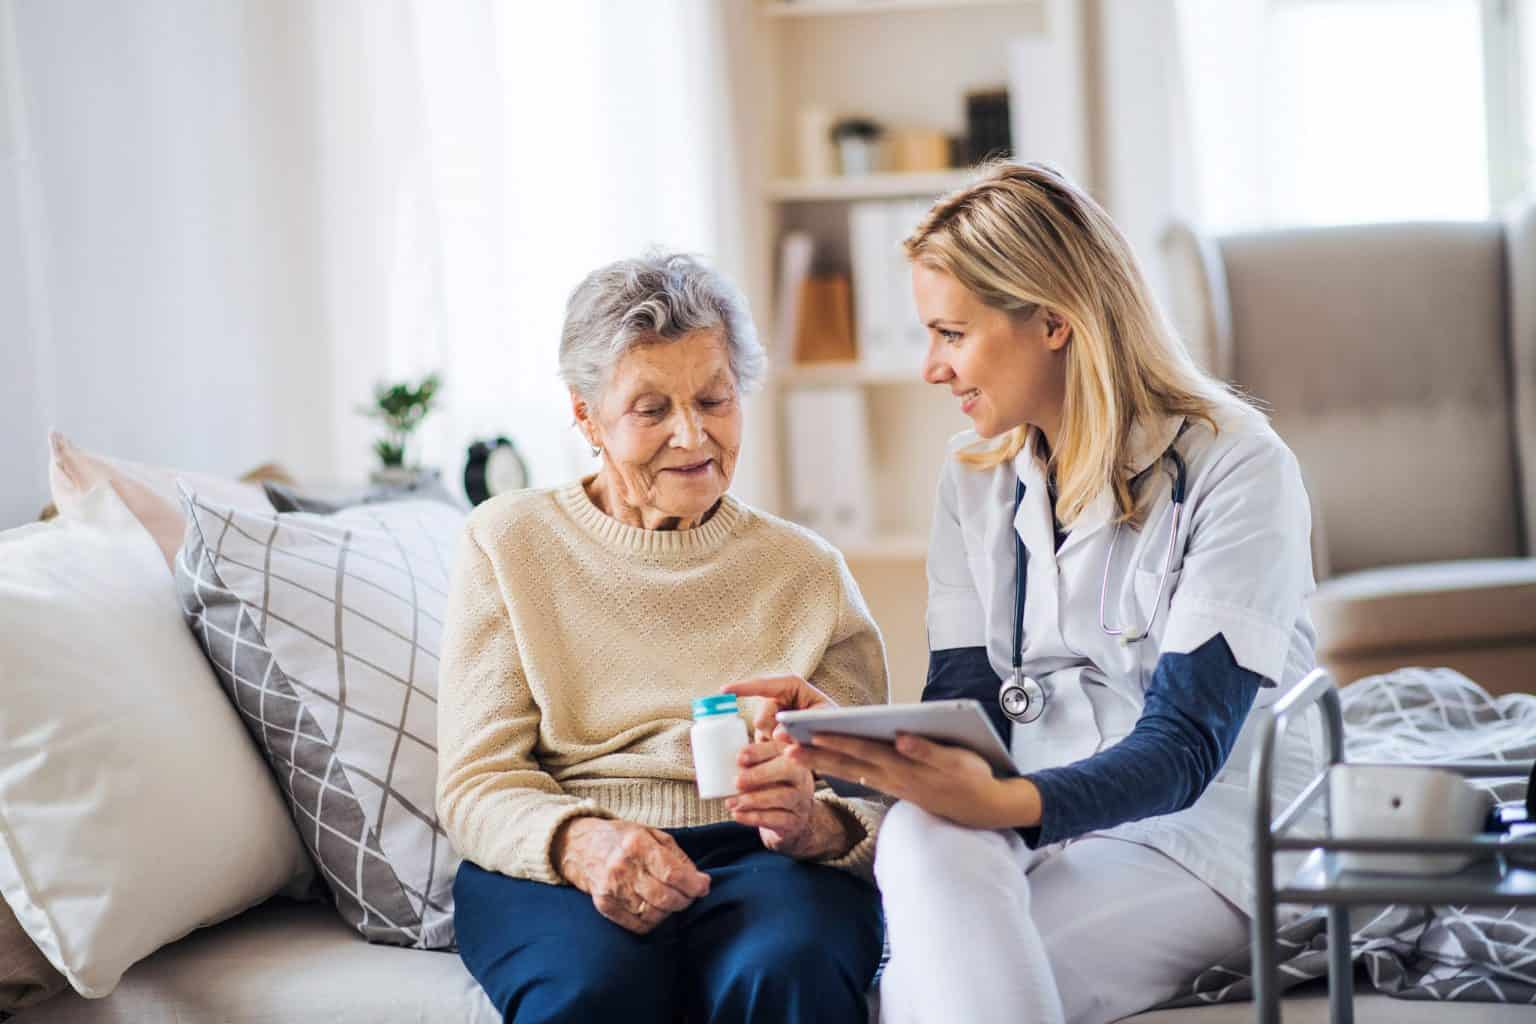 An elderly lady receiving aged care services at home as part of transitioning to aged care